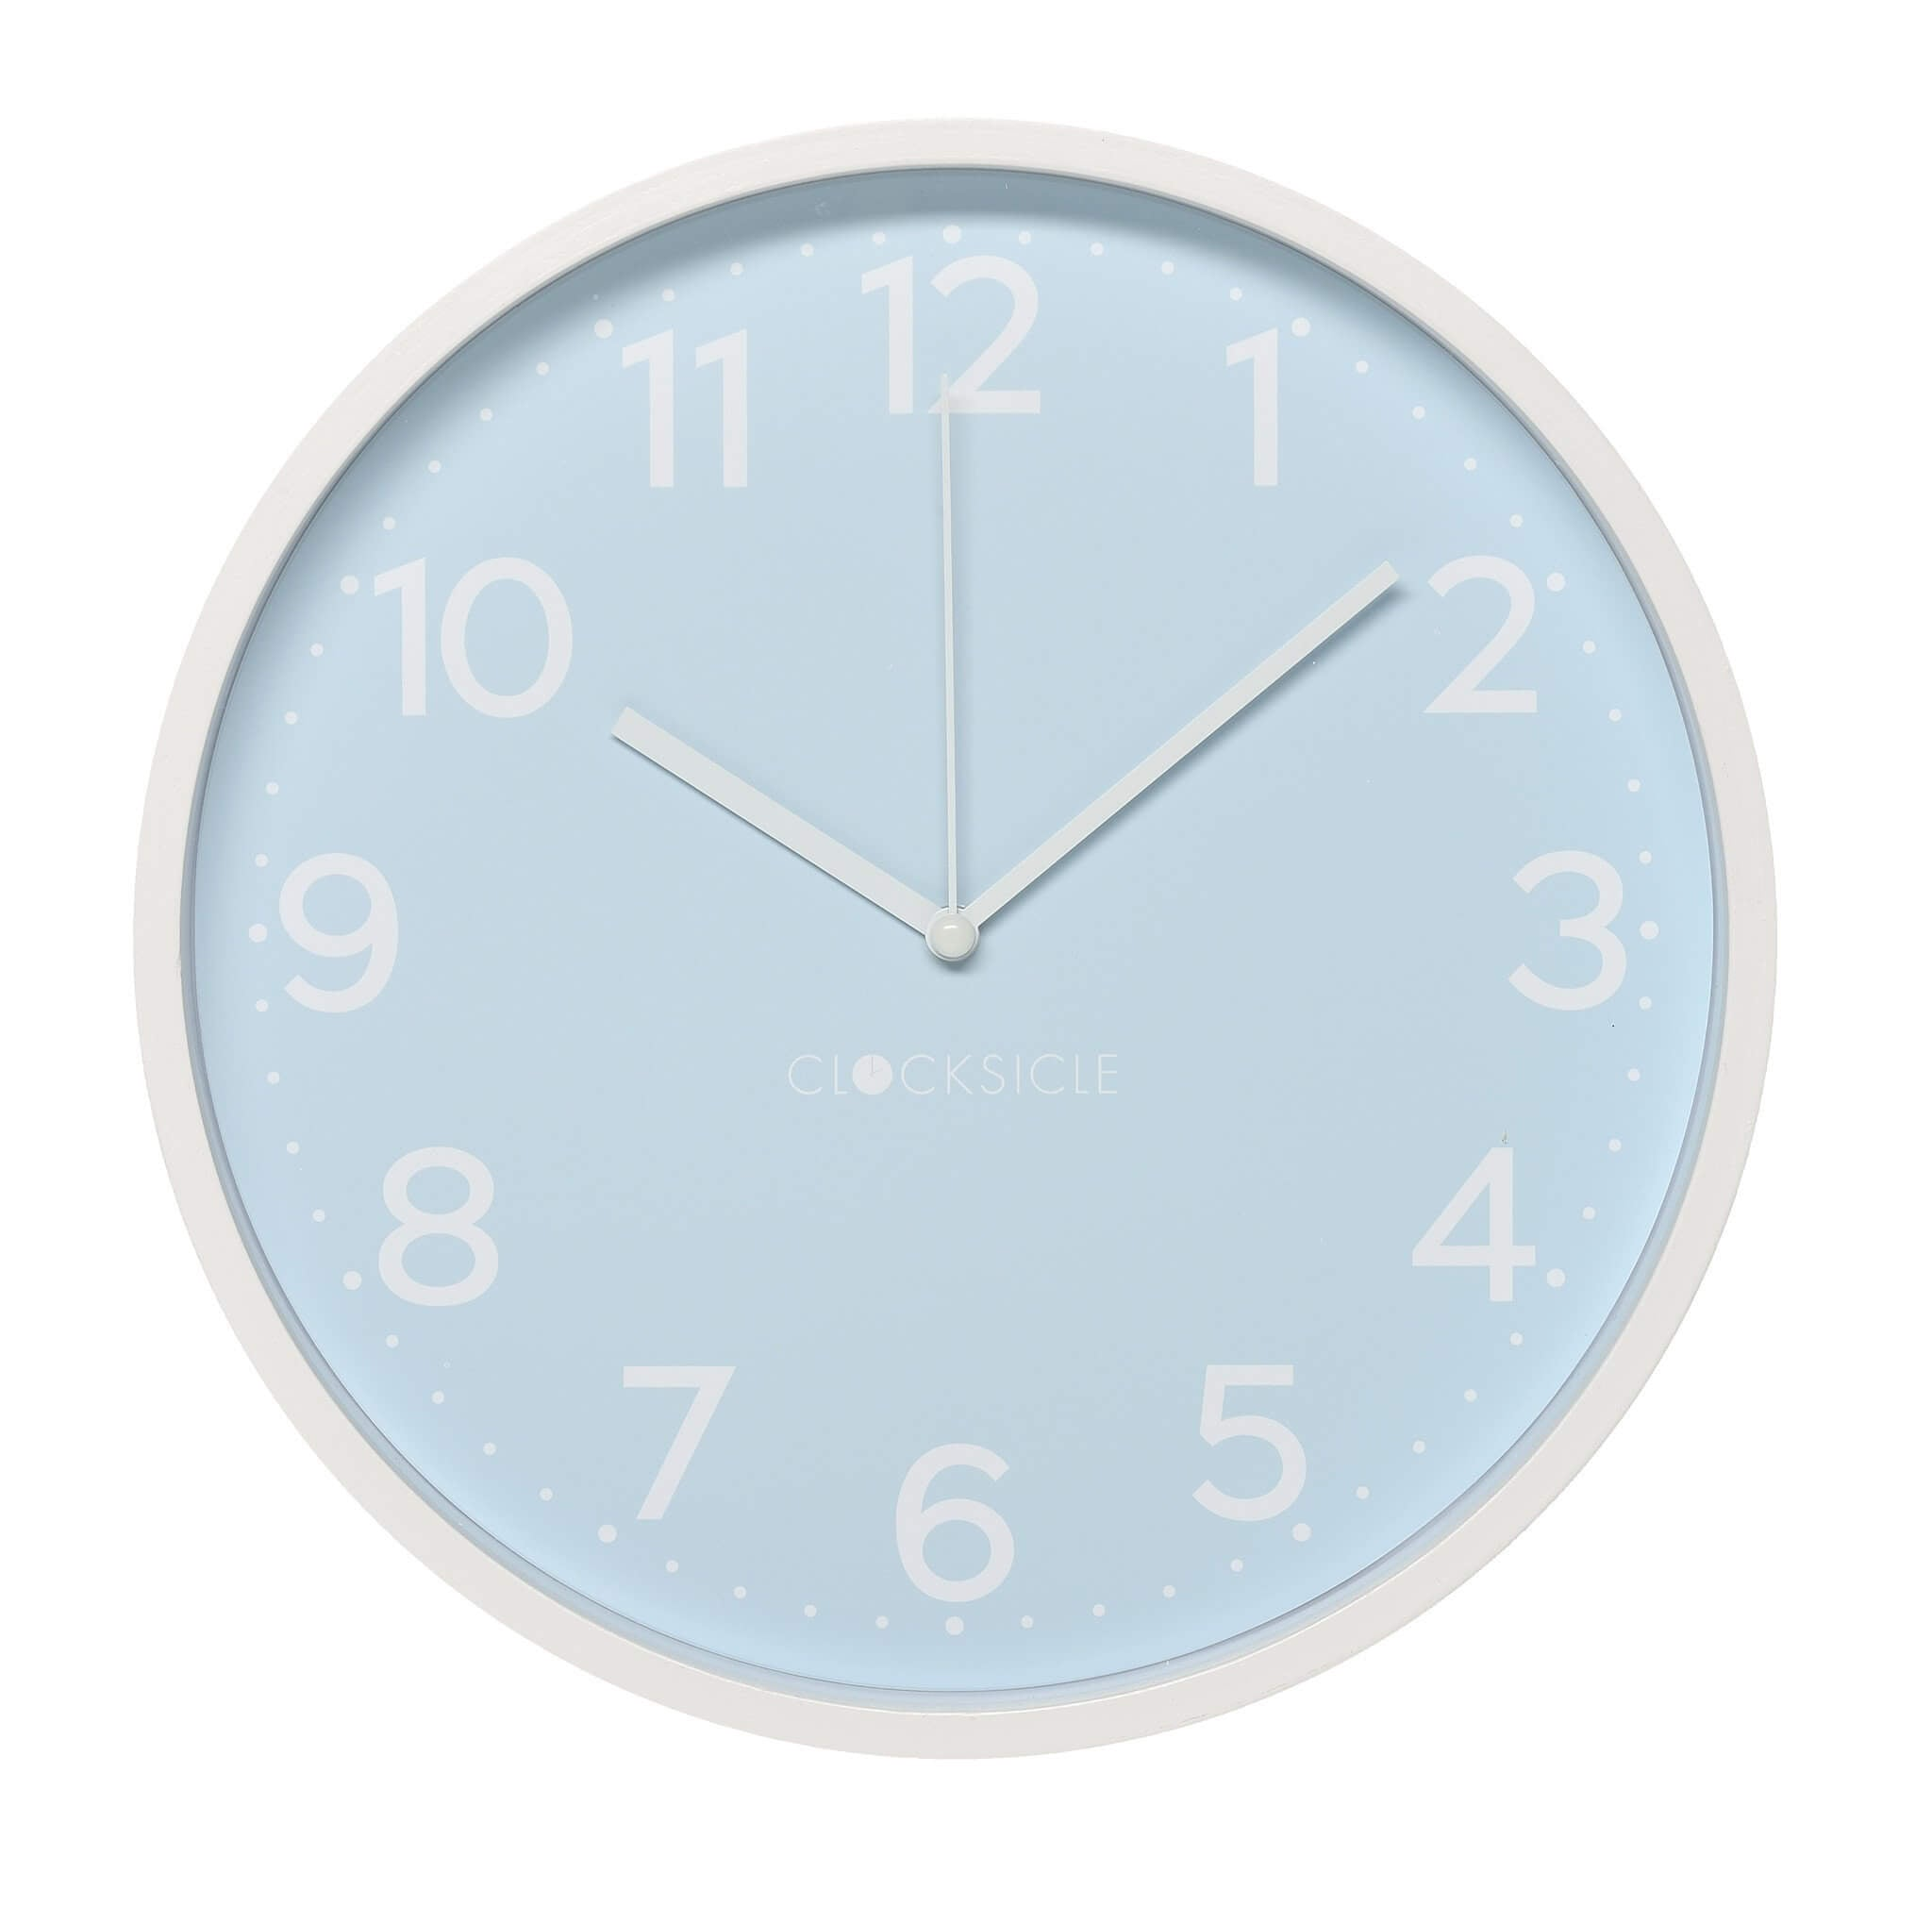 Pale Blue Children's Wall Clock with white rim